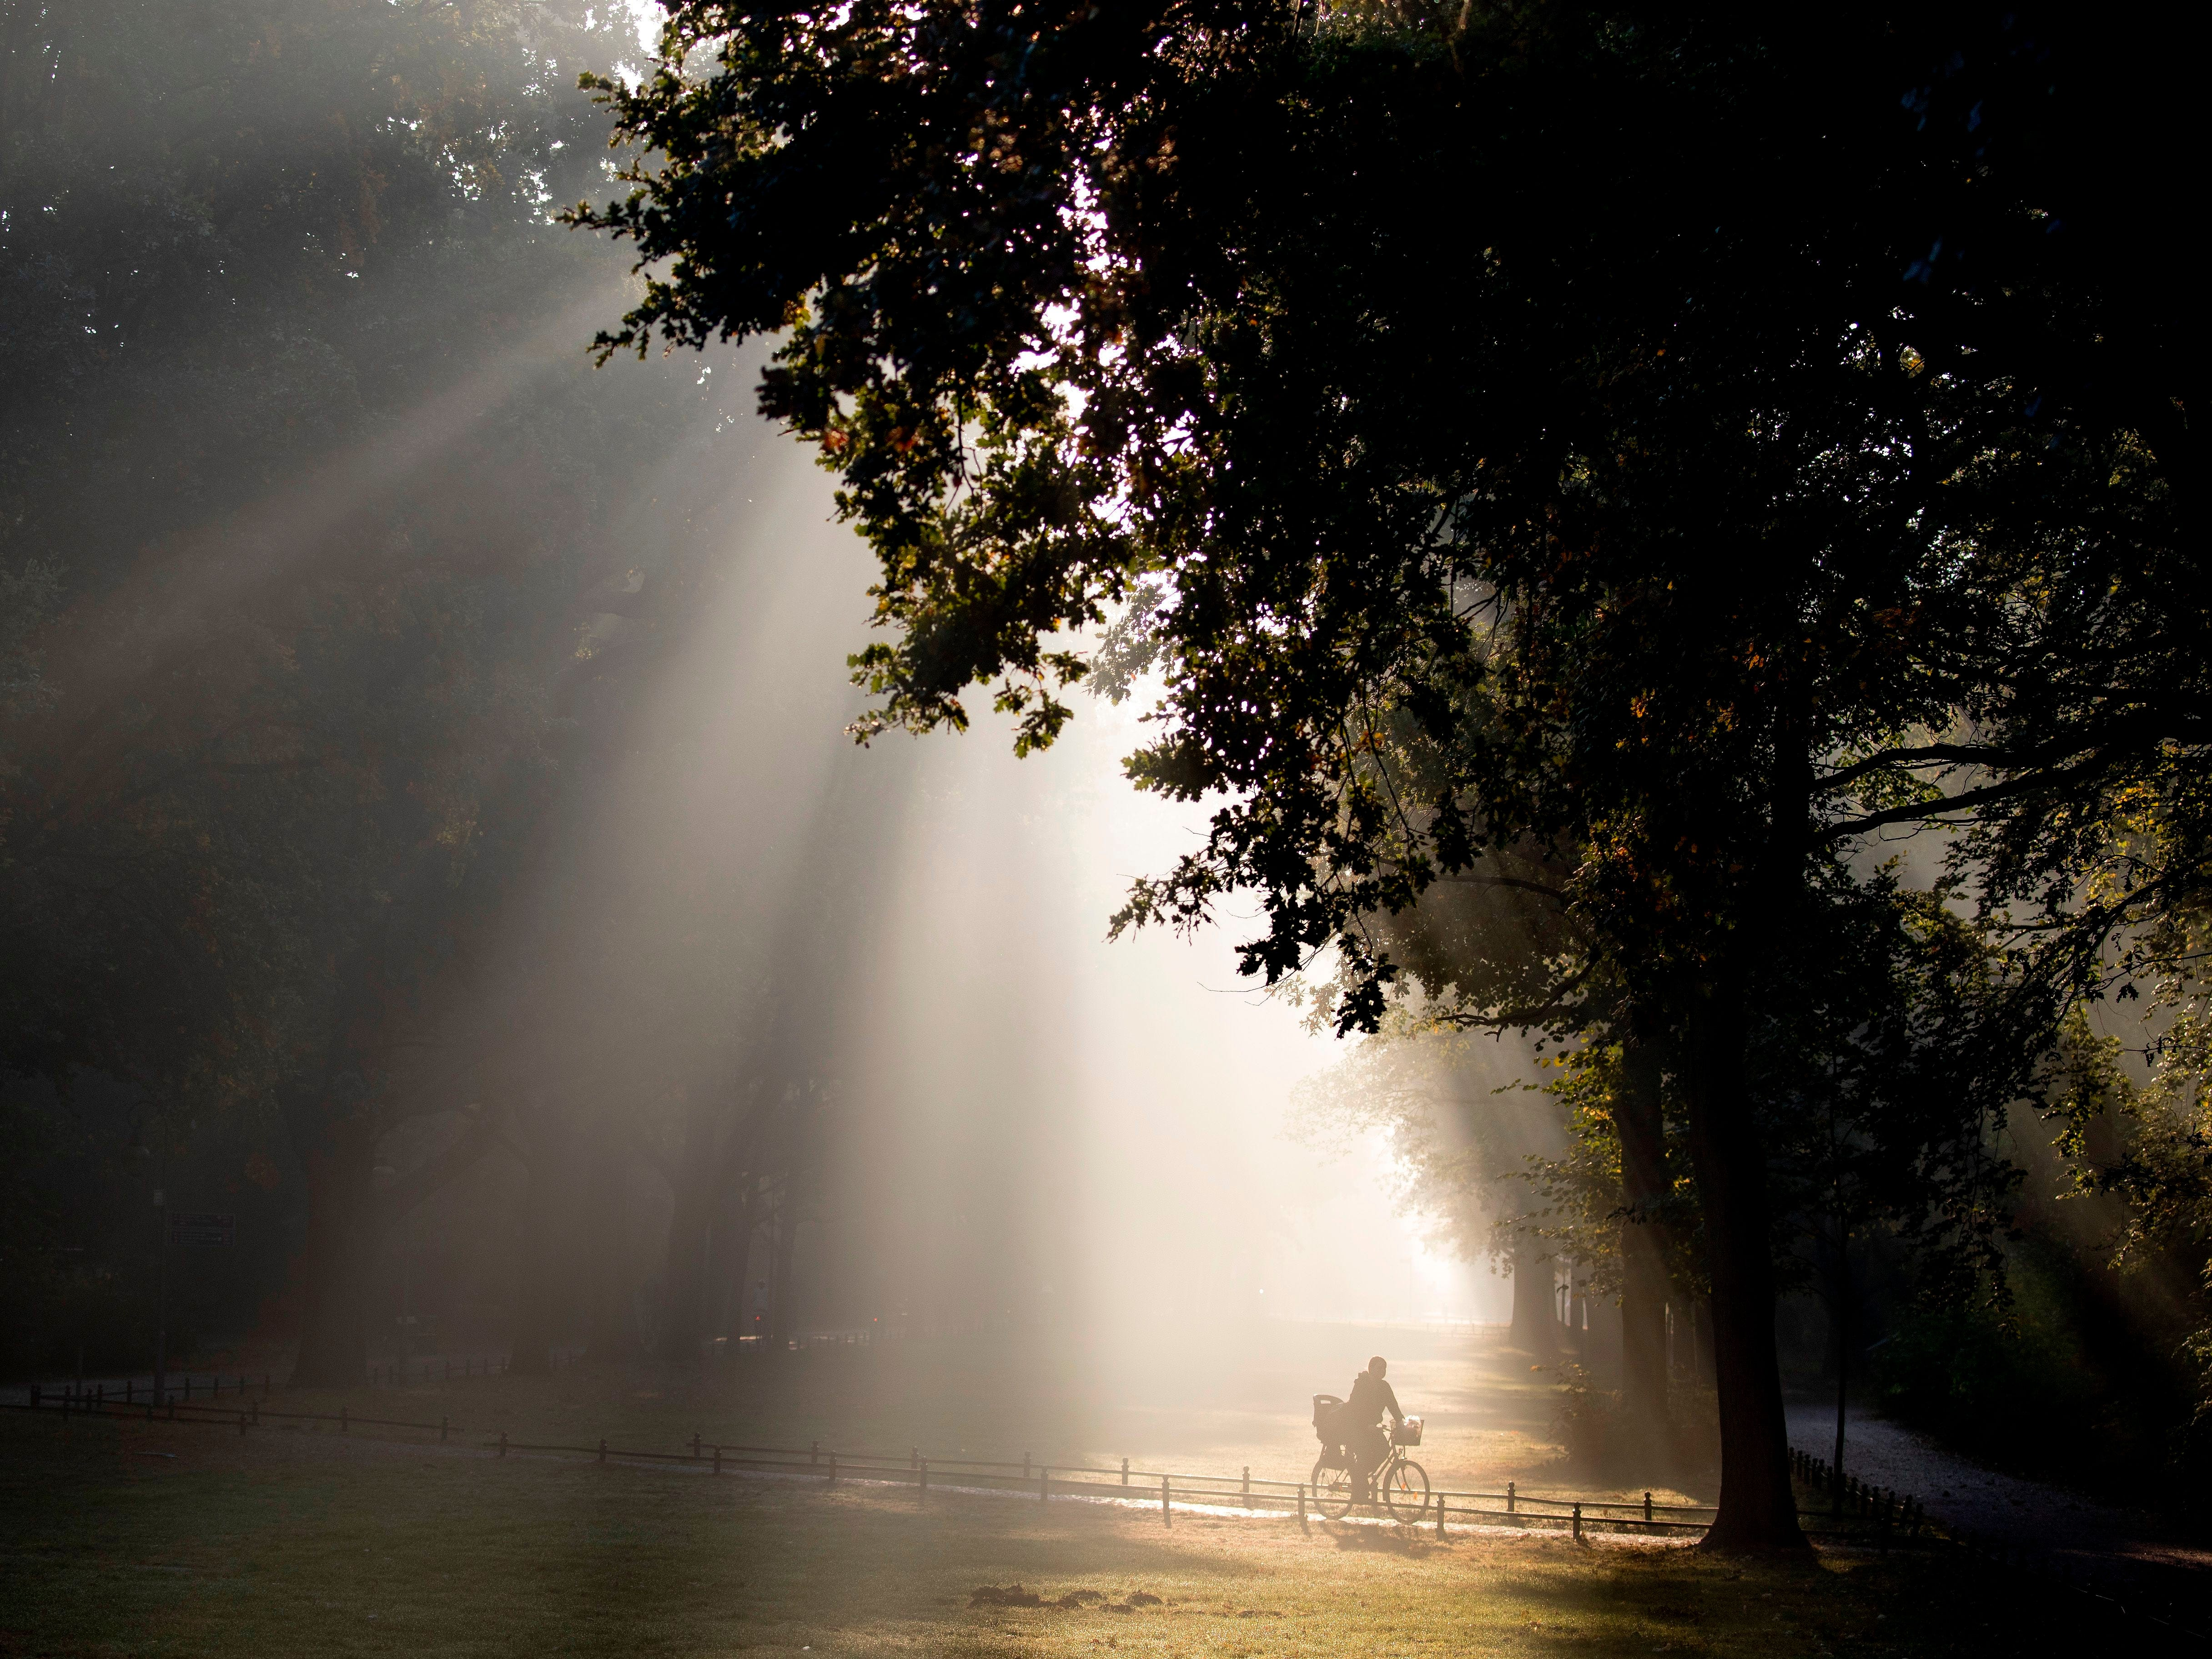 The sun cuts through the morning fog as a commuter on a bicycle makes his way through the Tiergarten park in Berlin on Oct. 10, 2018.